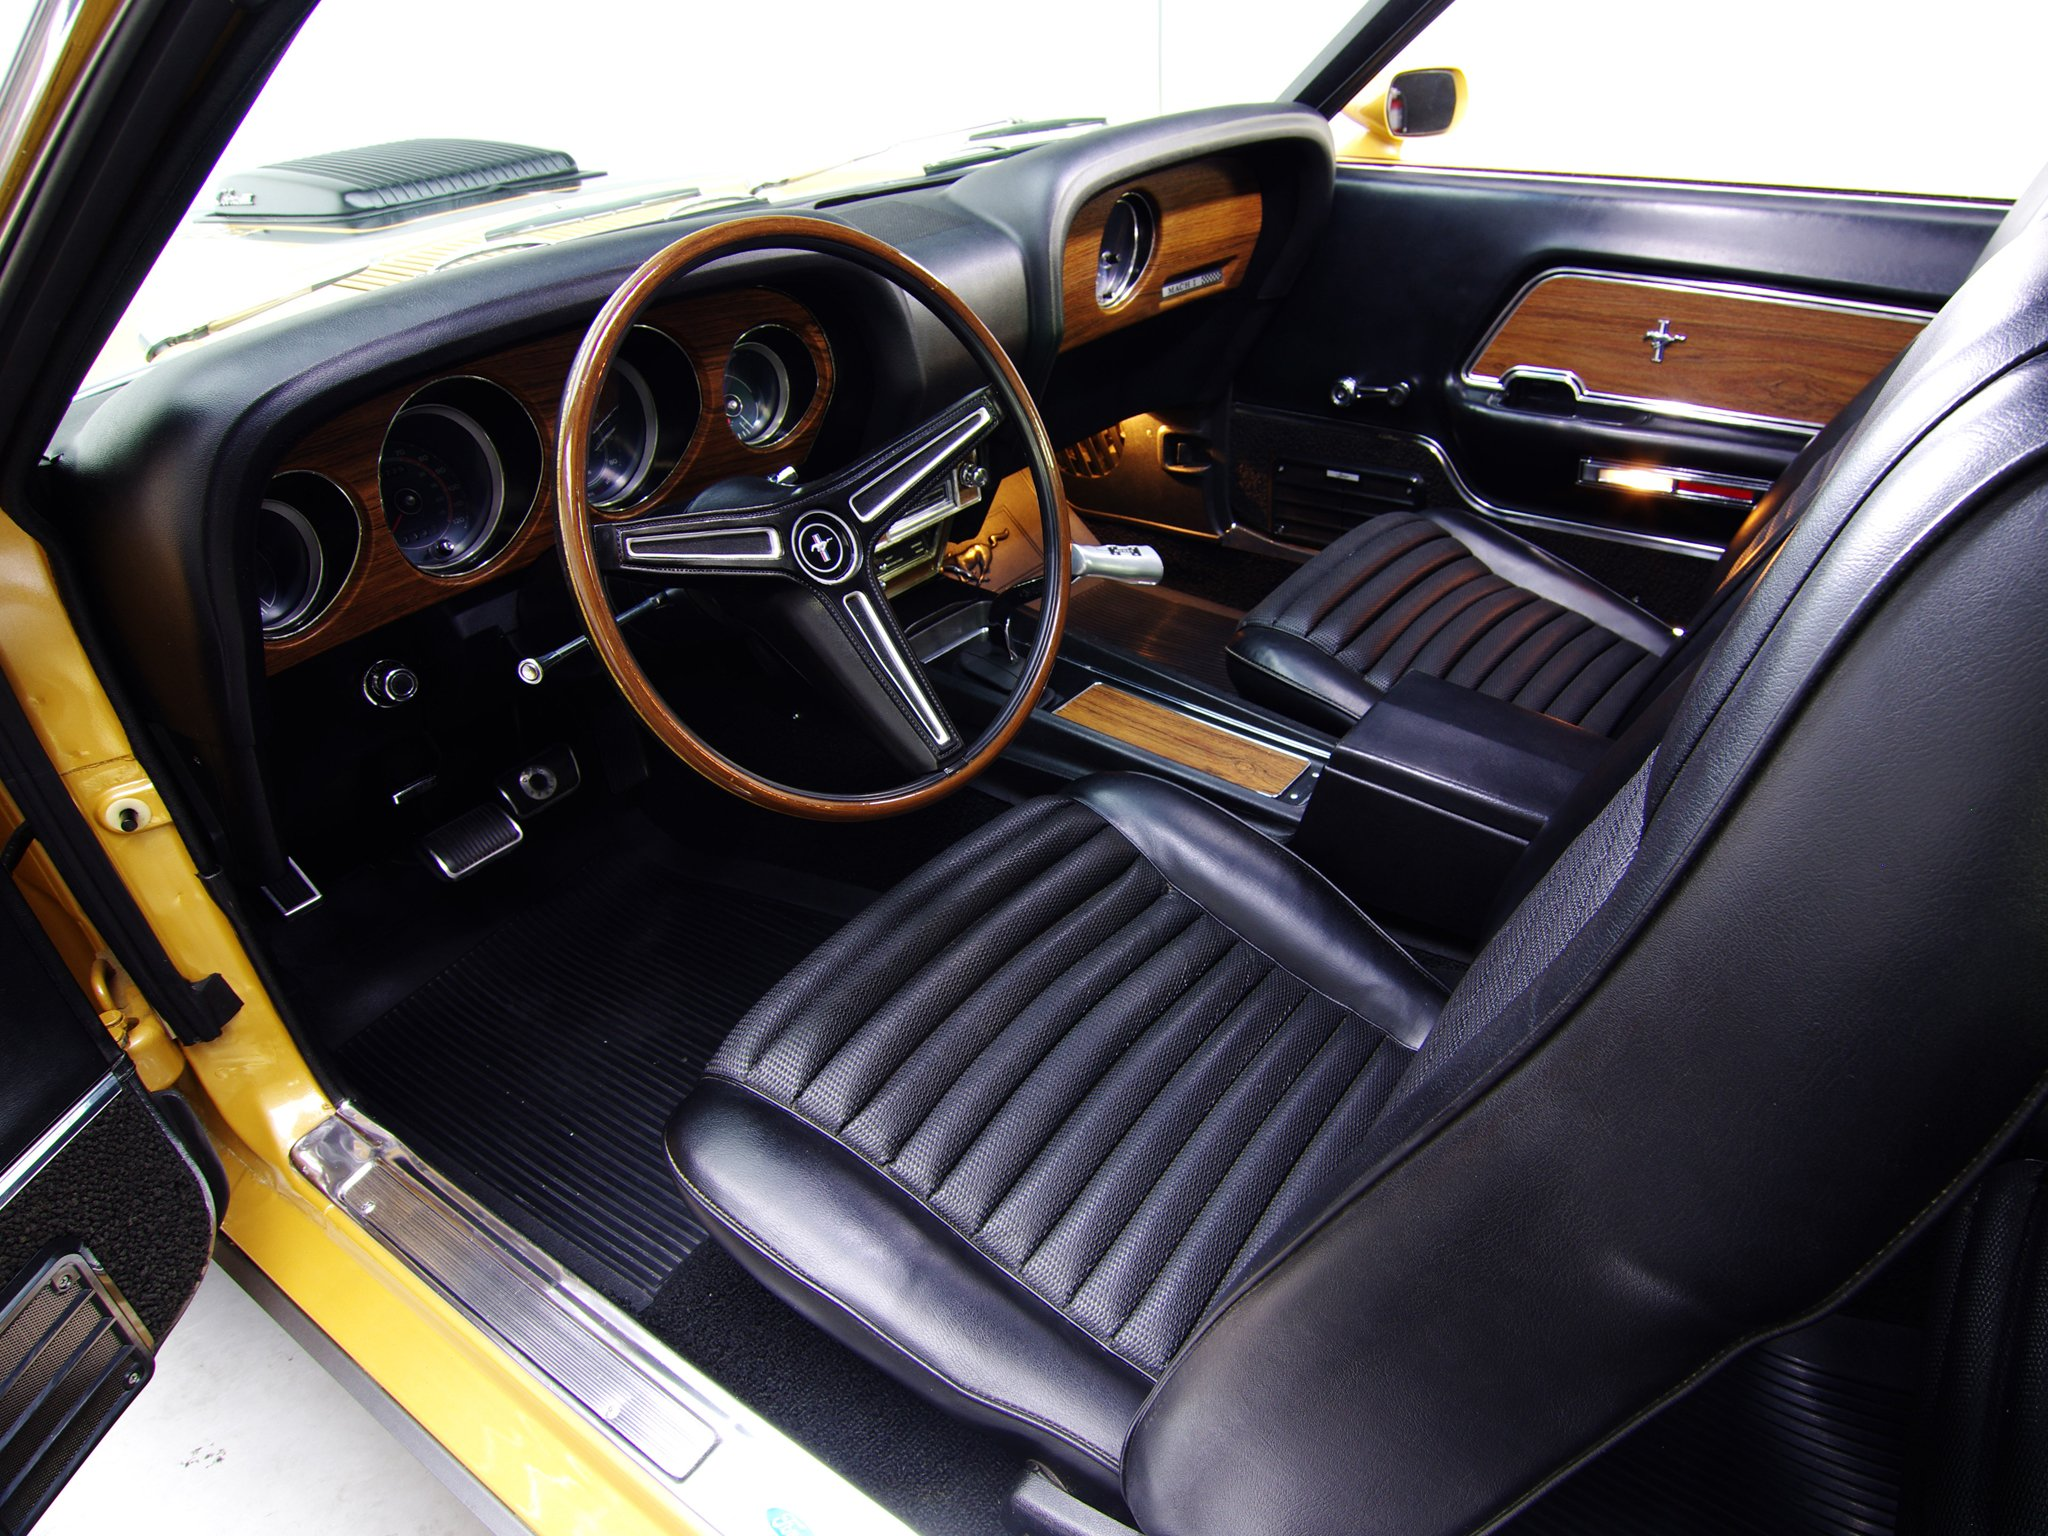 1970 ford mustang mach 1 428 super cobra jet muscle classic interior e wallpaper 2048x1536. Black Bedroom Furniture Sets. Home Design Ideas